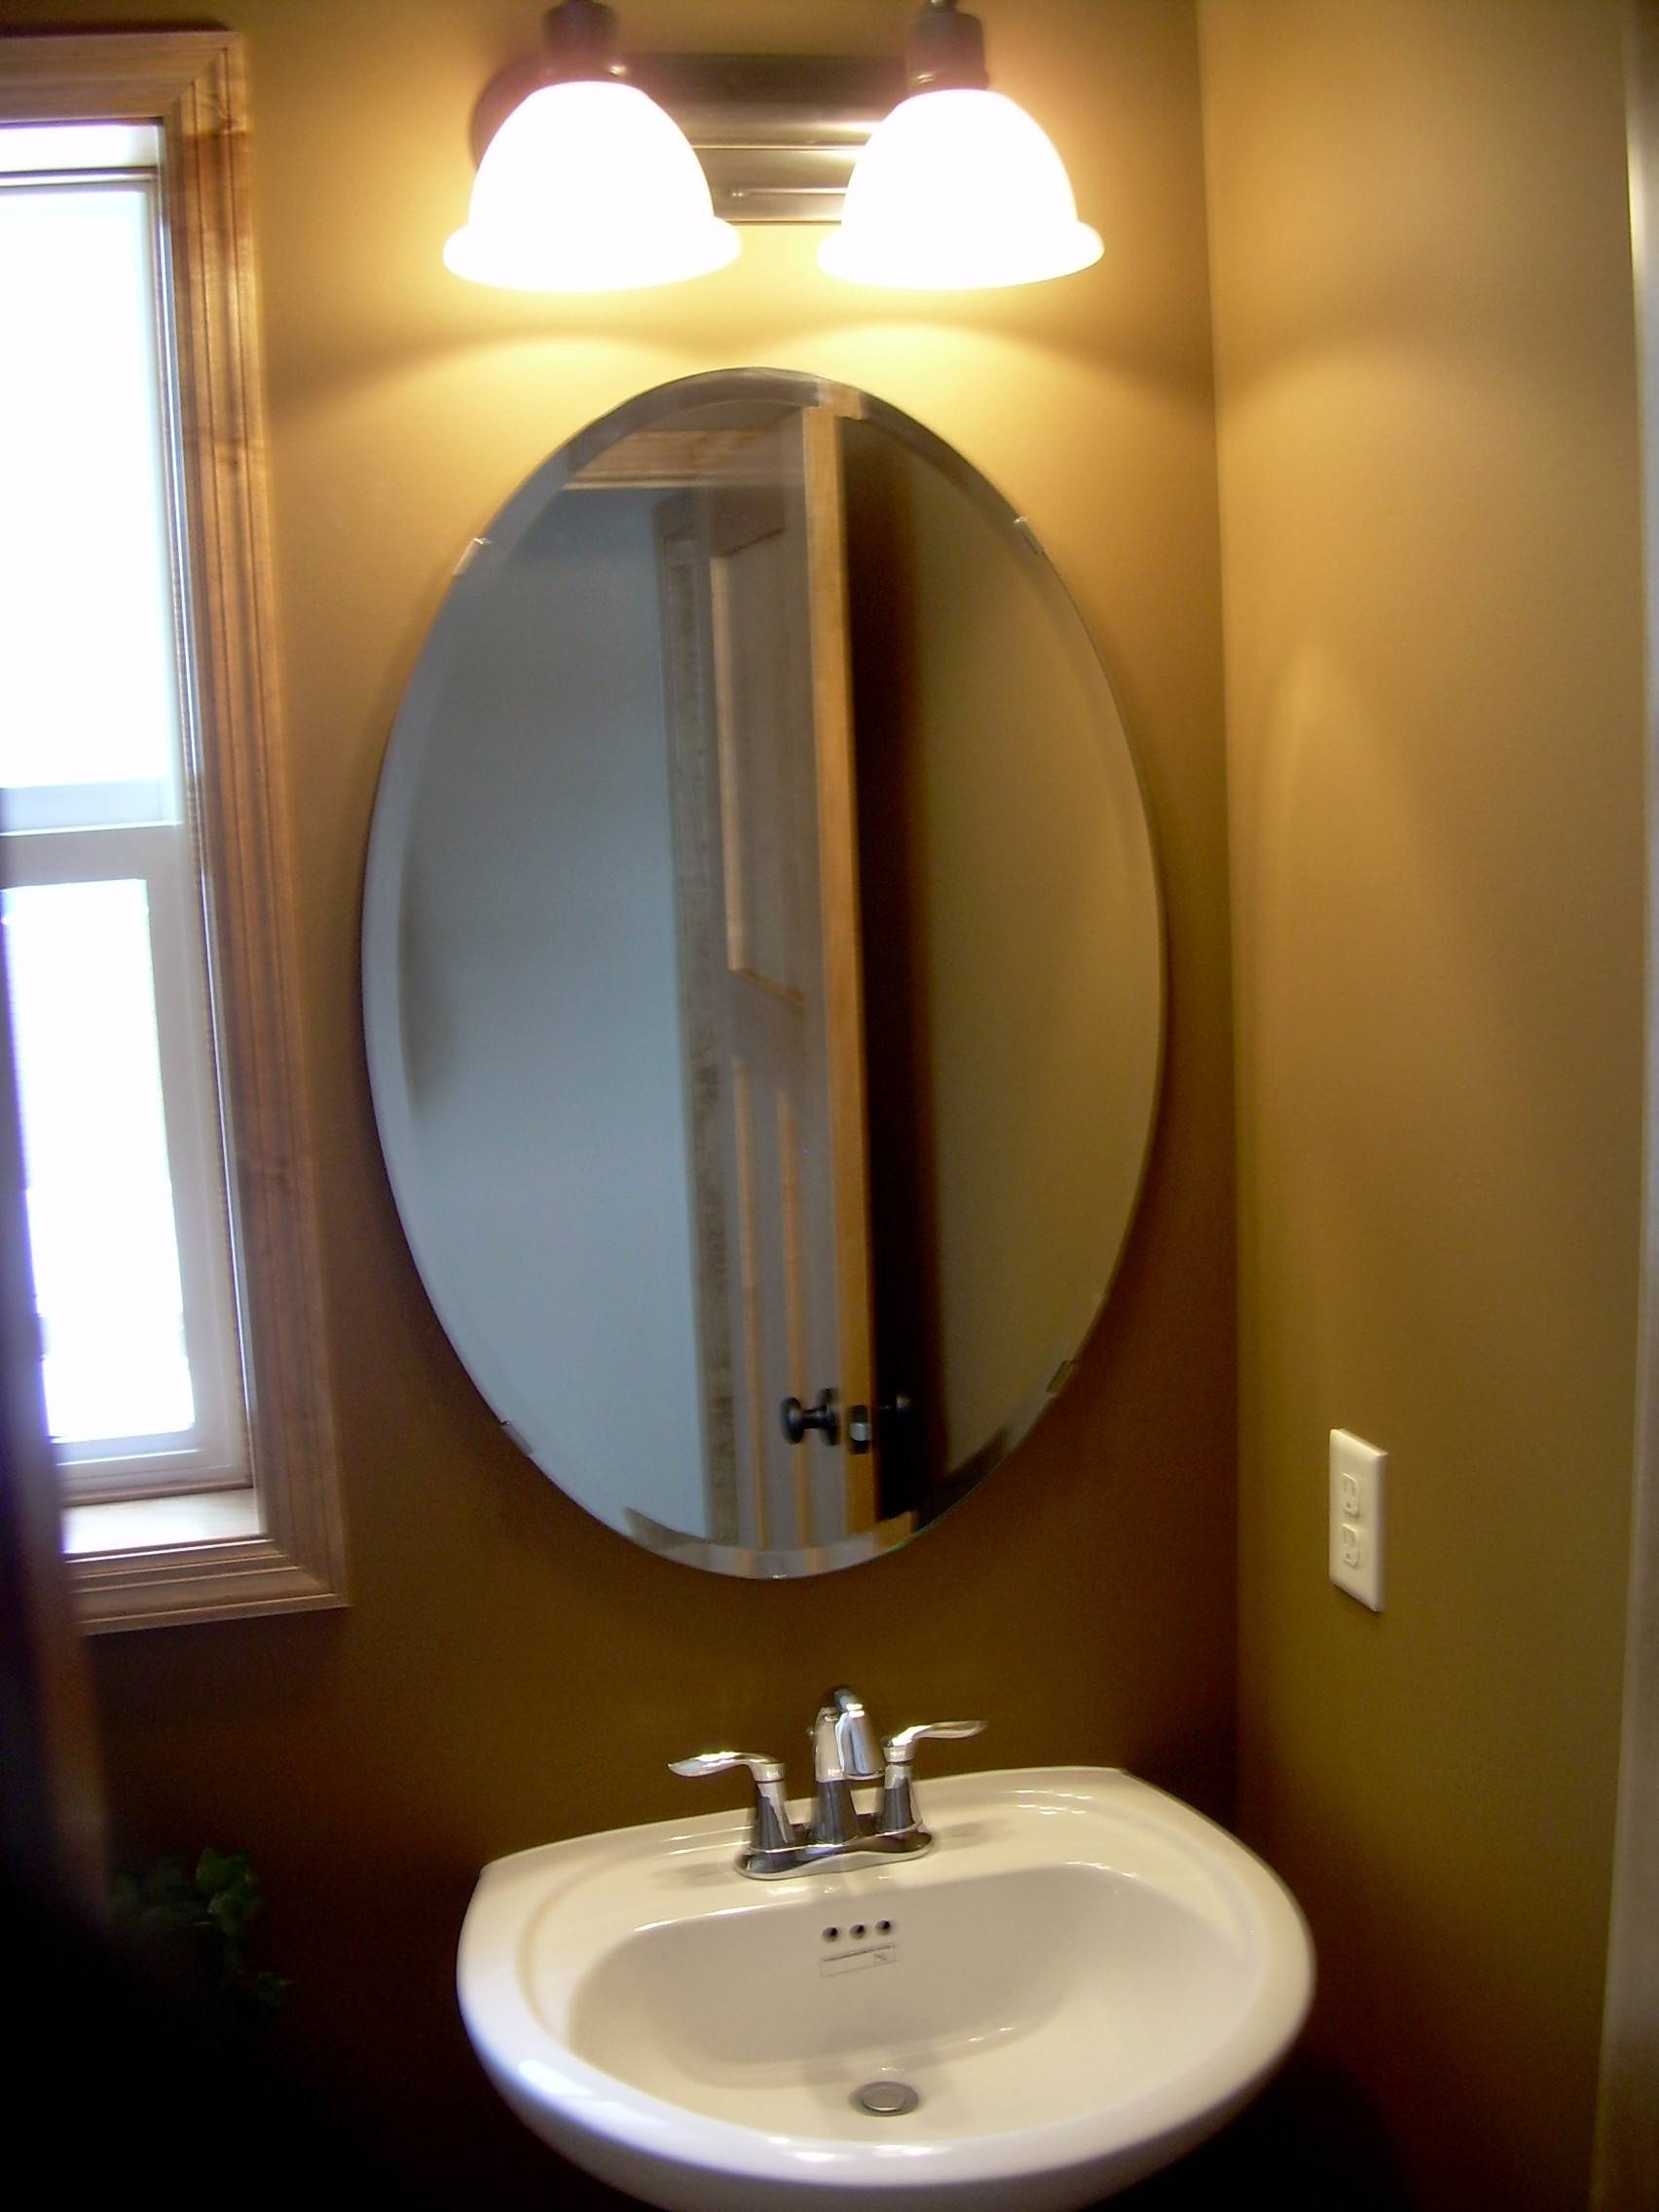 Surprising Oval Bathroom Vanity Mirrors Furniture Bathroom Framed within Small Antique Mirrors (Image 23 of 25)